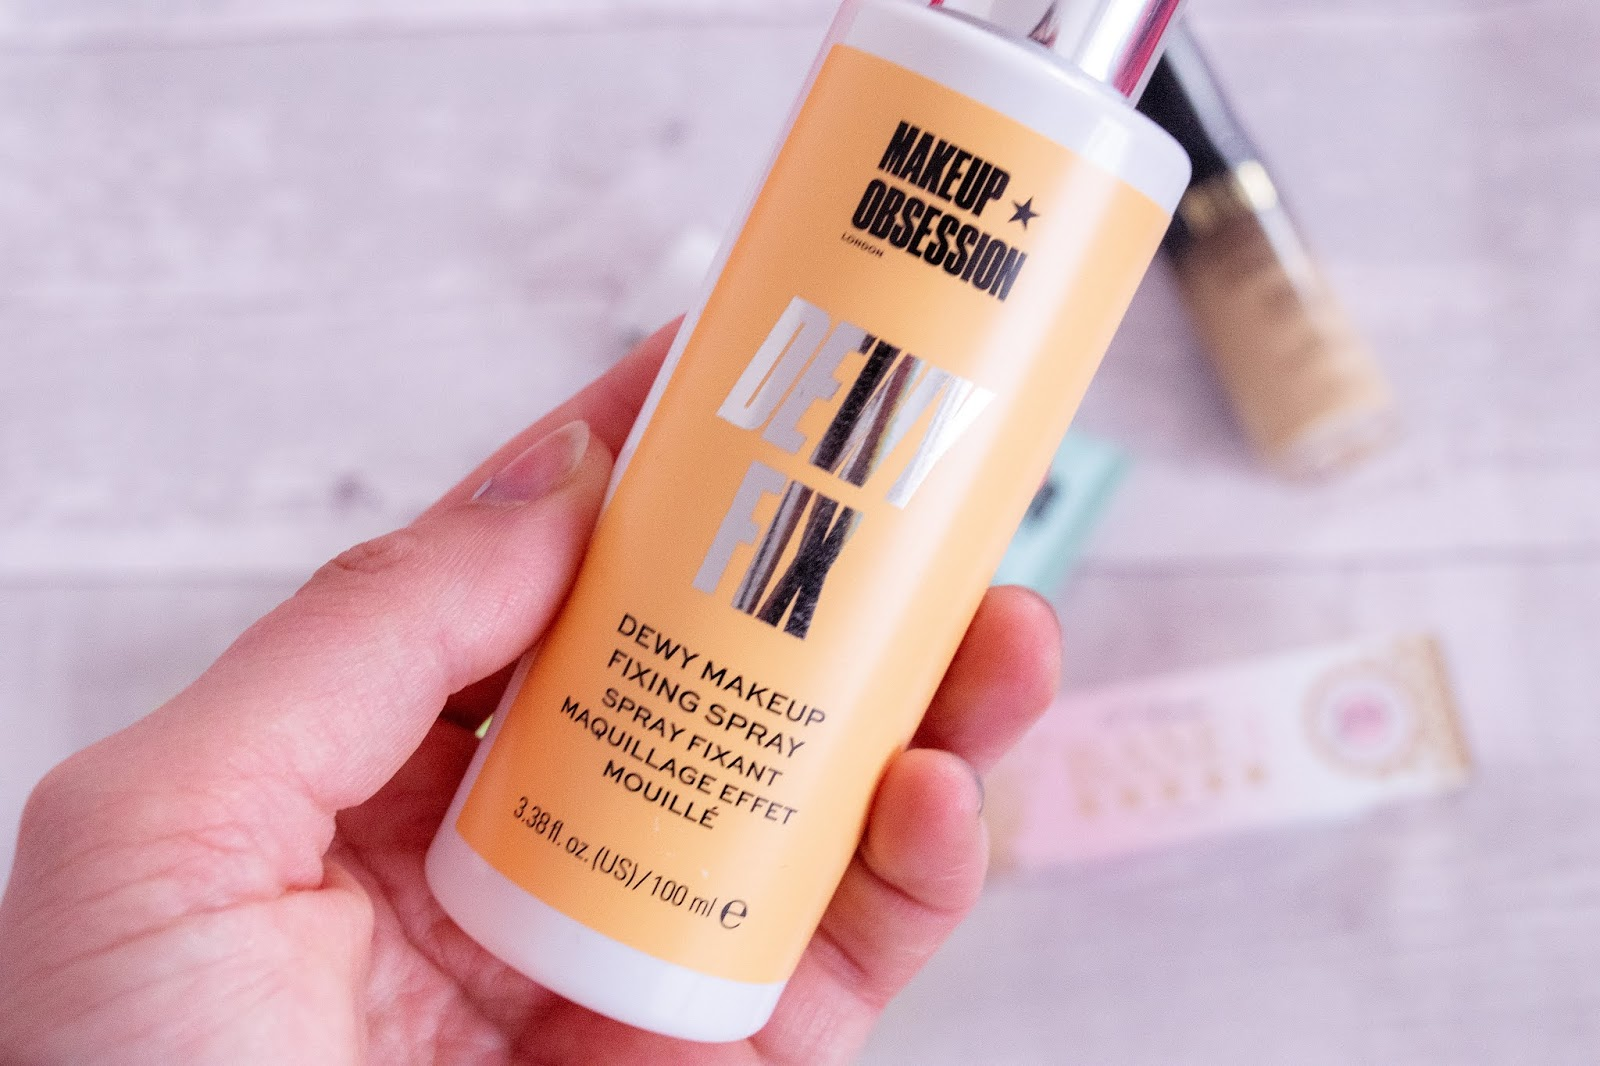 A close up of the Makeup Obsessions Dewy Finish Fixing Spray. The bottle is white with a spray top and an orange label.